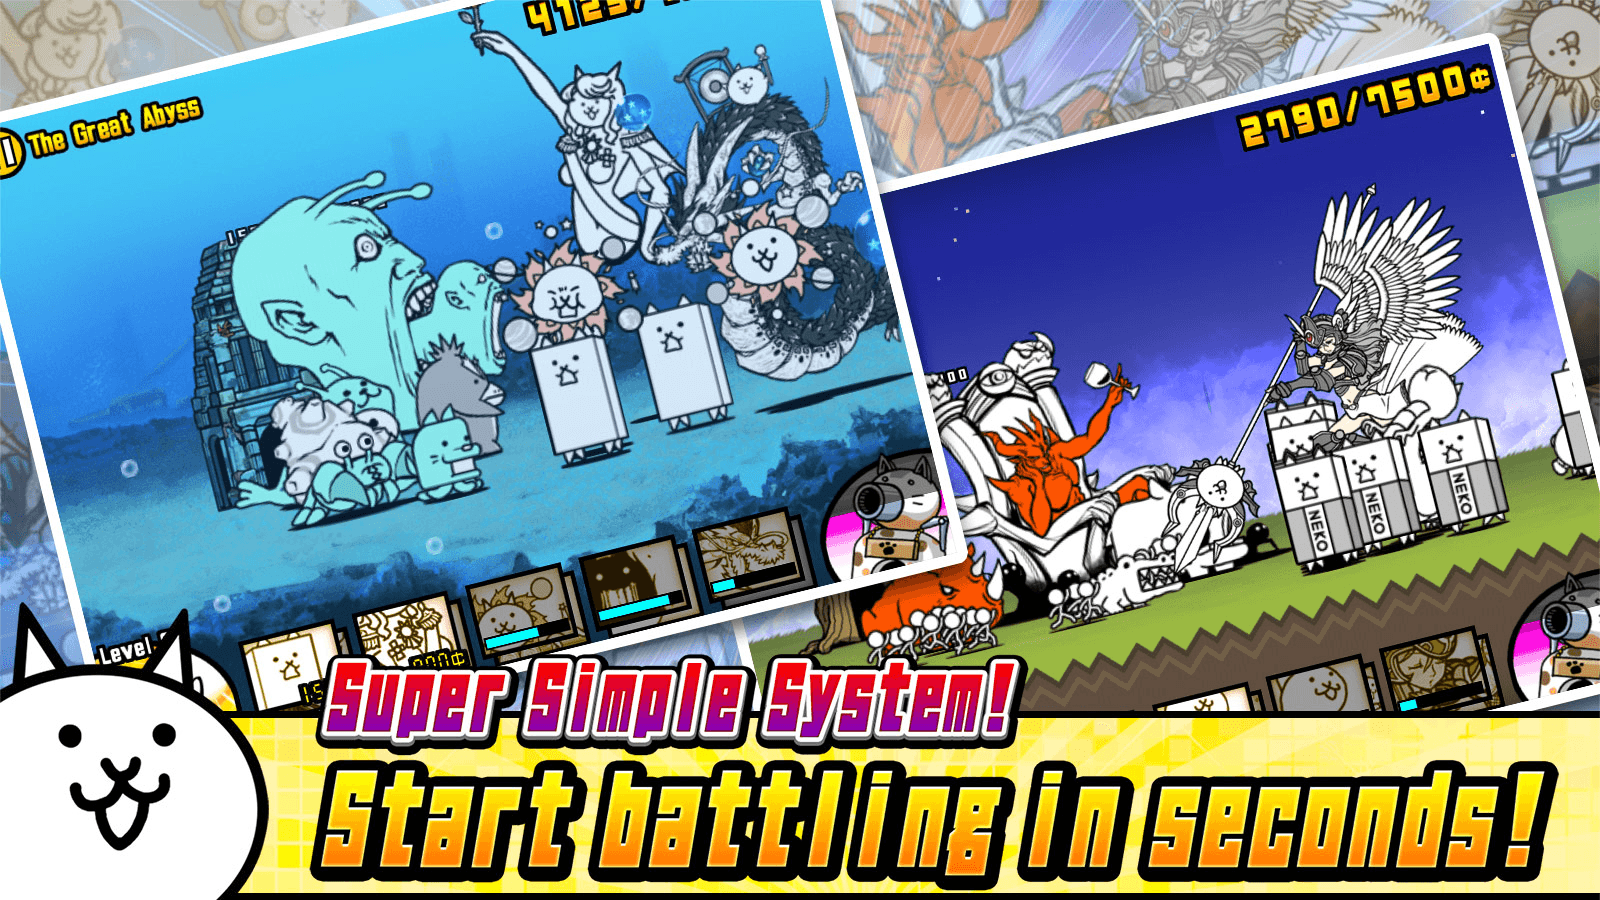 The Battle Cats v7 1 1 Mod APK [Latest] | iHackedit